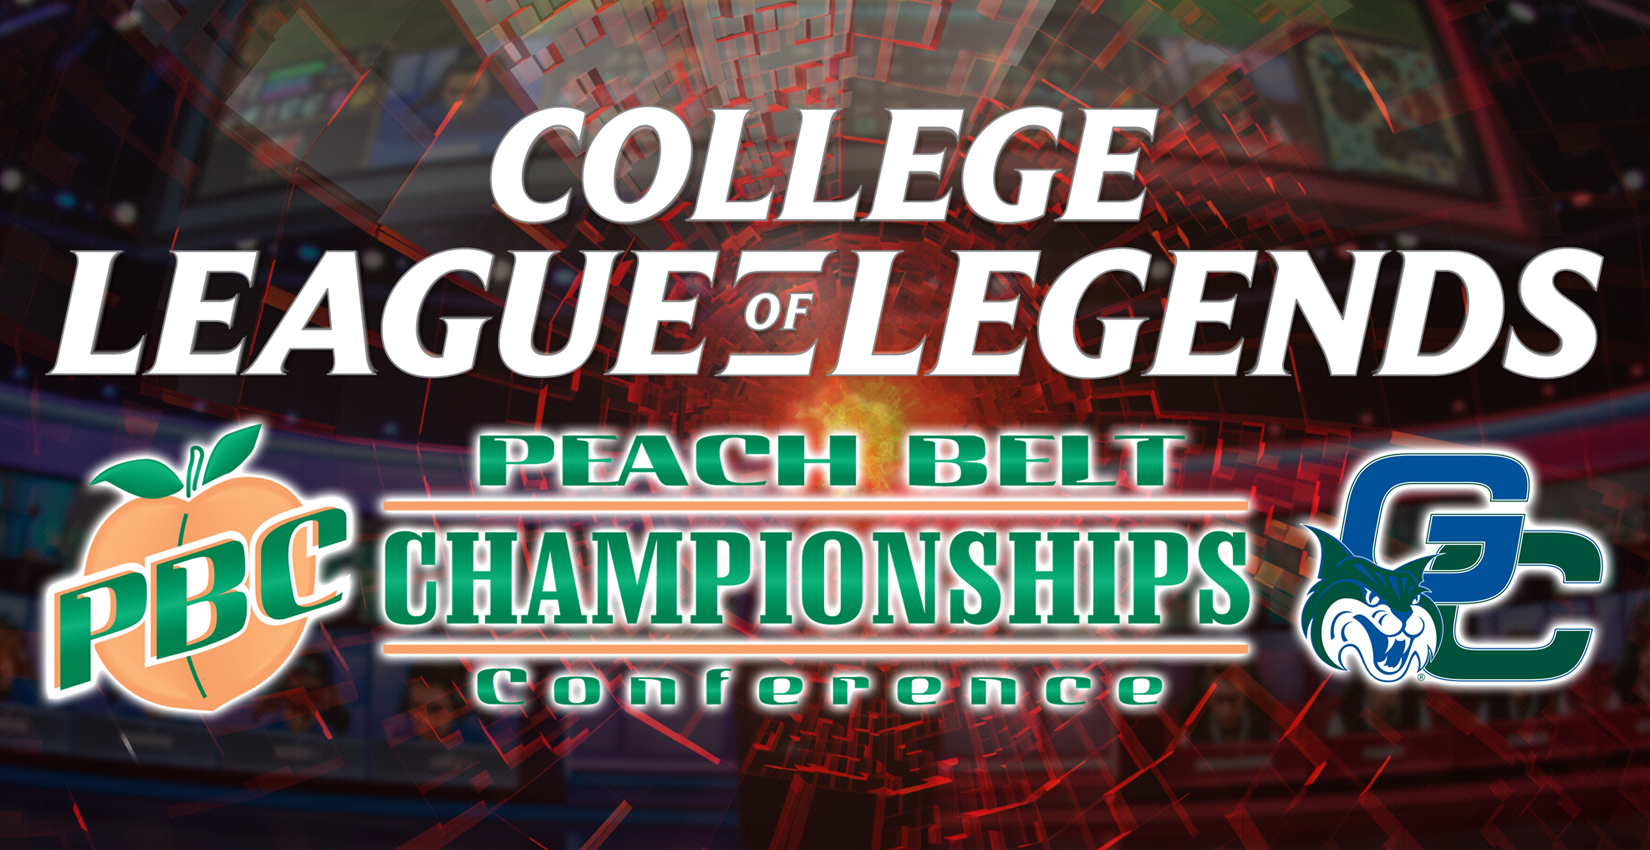 Bobcat Athletics to host Peach Belt Tournament in League of Legends